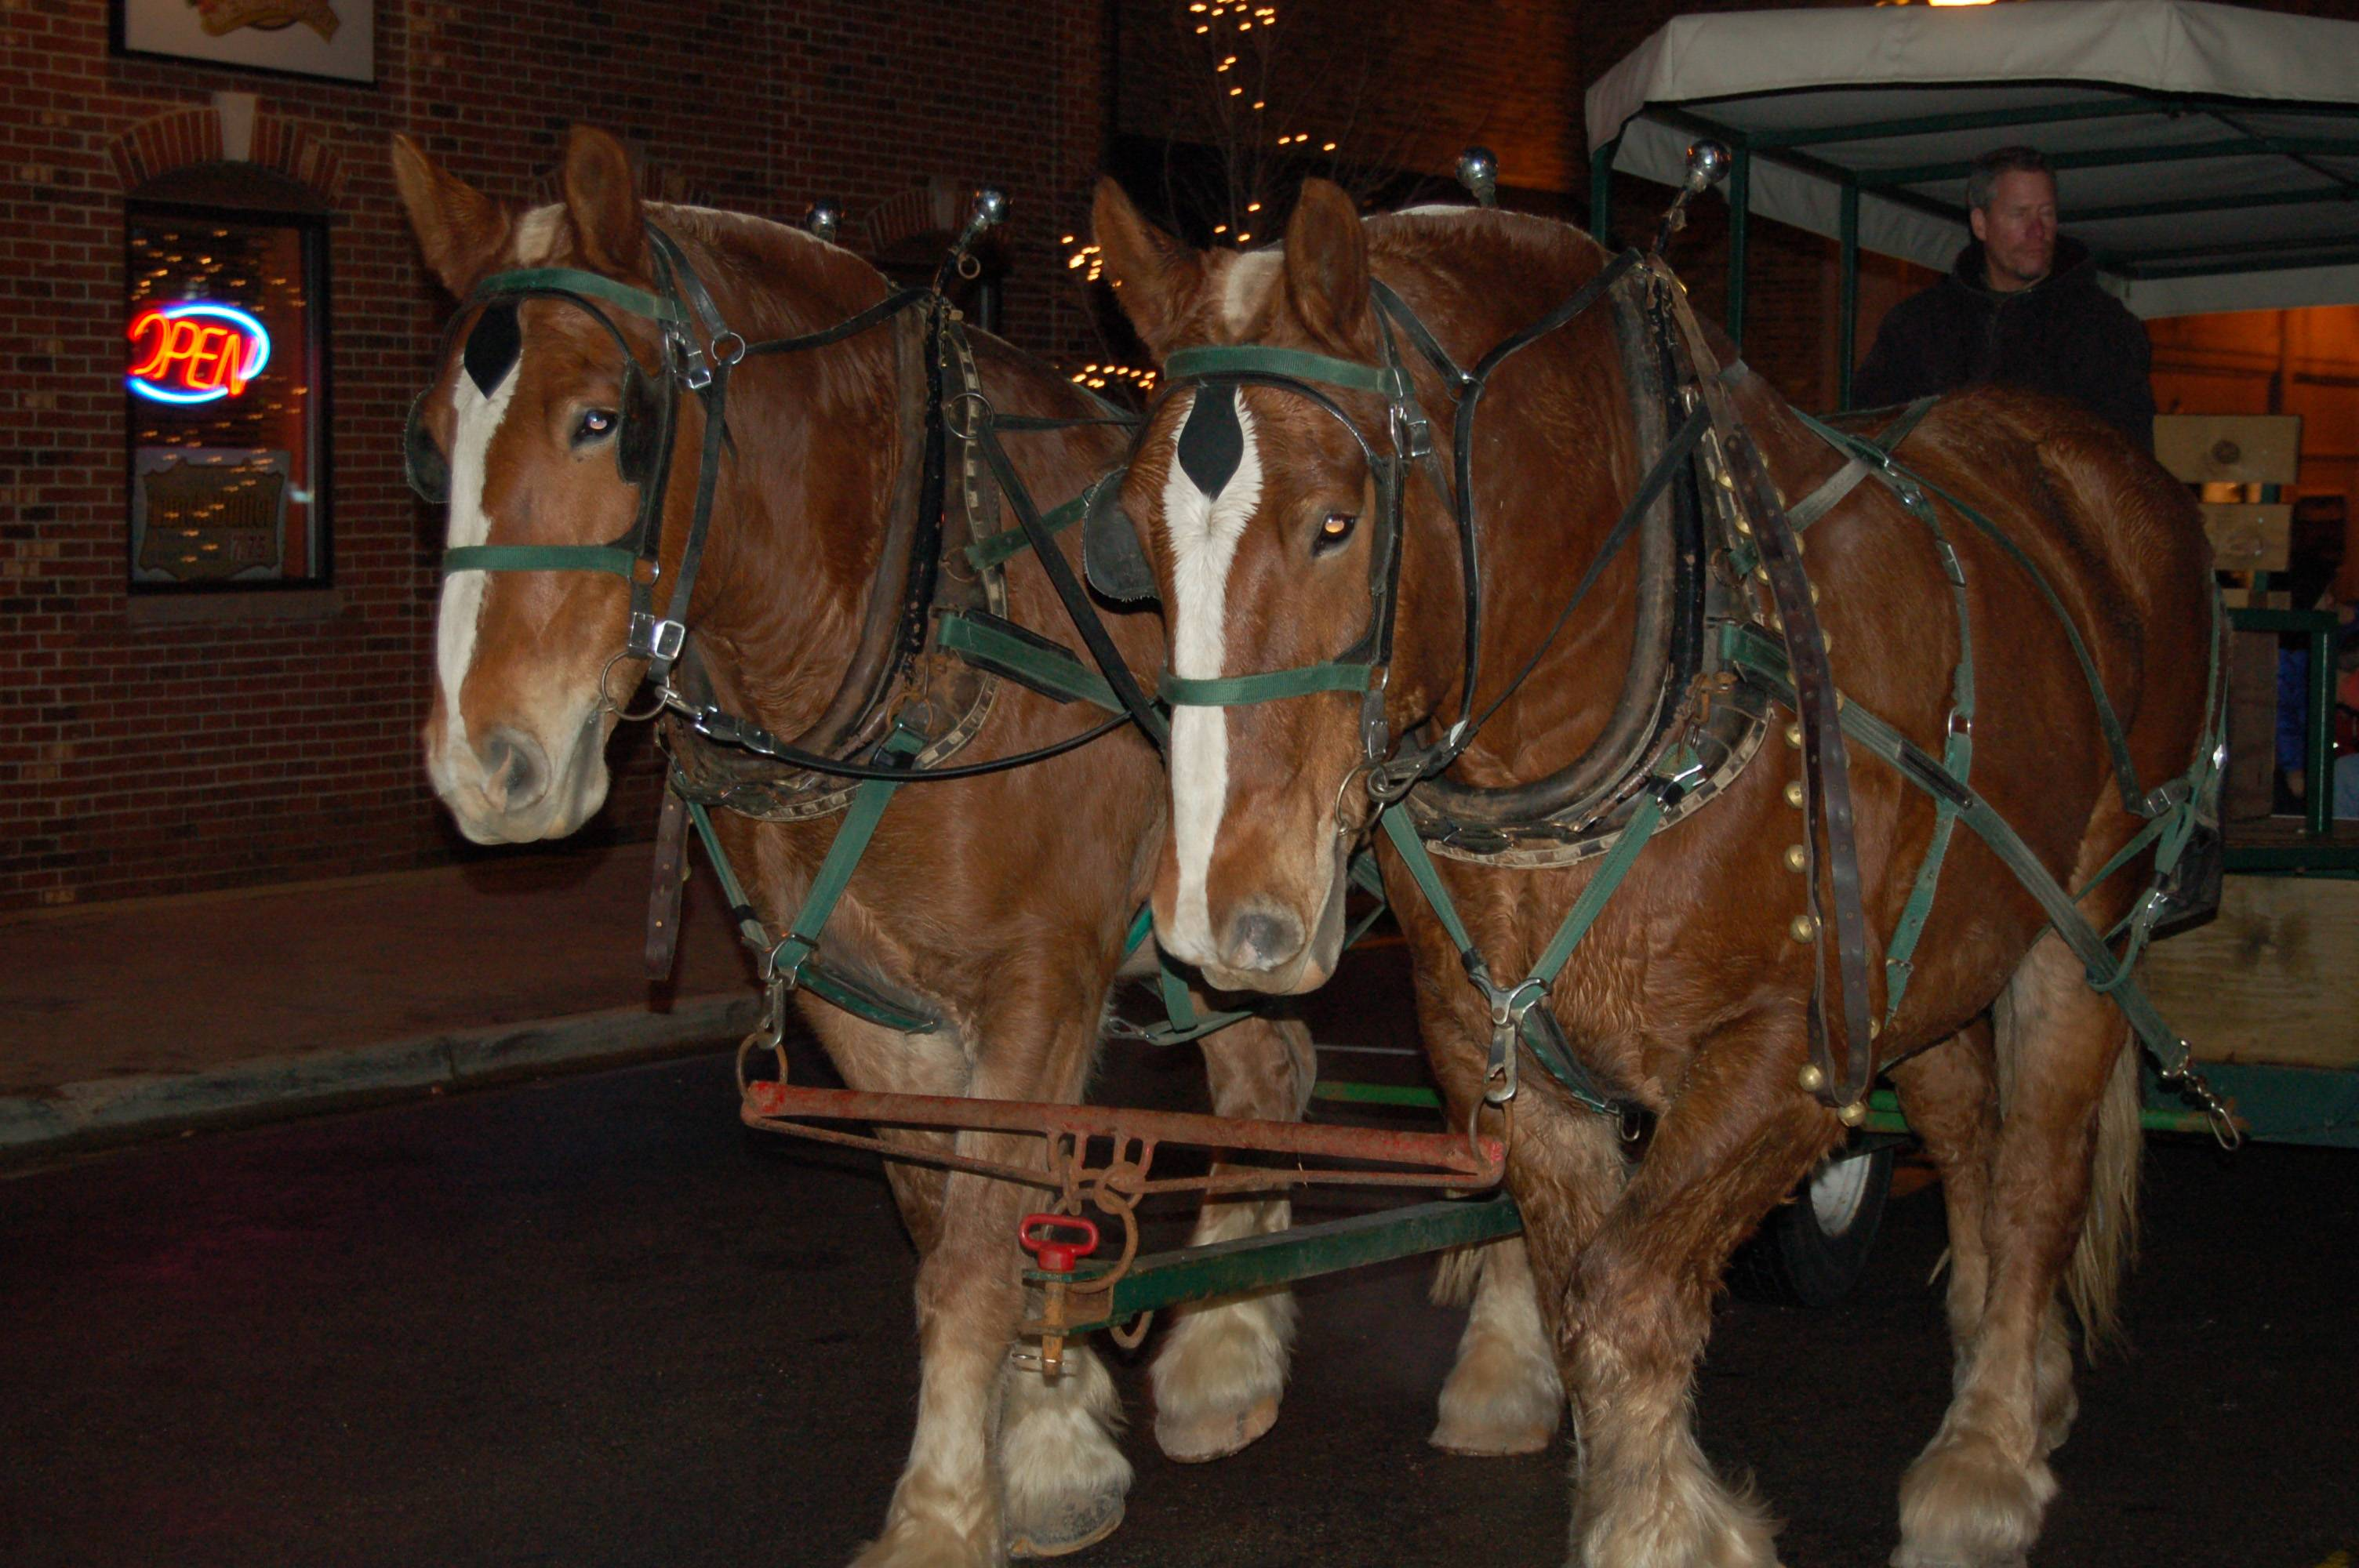 Horse-drawn trolley rides through luminary-lit streets in the historic district are one of many free, family-friendly activities scheduled for West Chicago's Frosty Fest on December 1, 2012 from 4:00 -- 7:00 p.m.